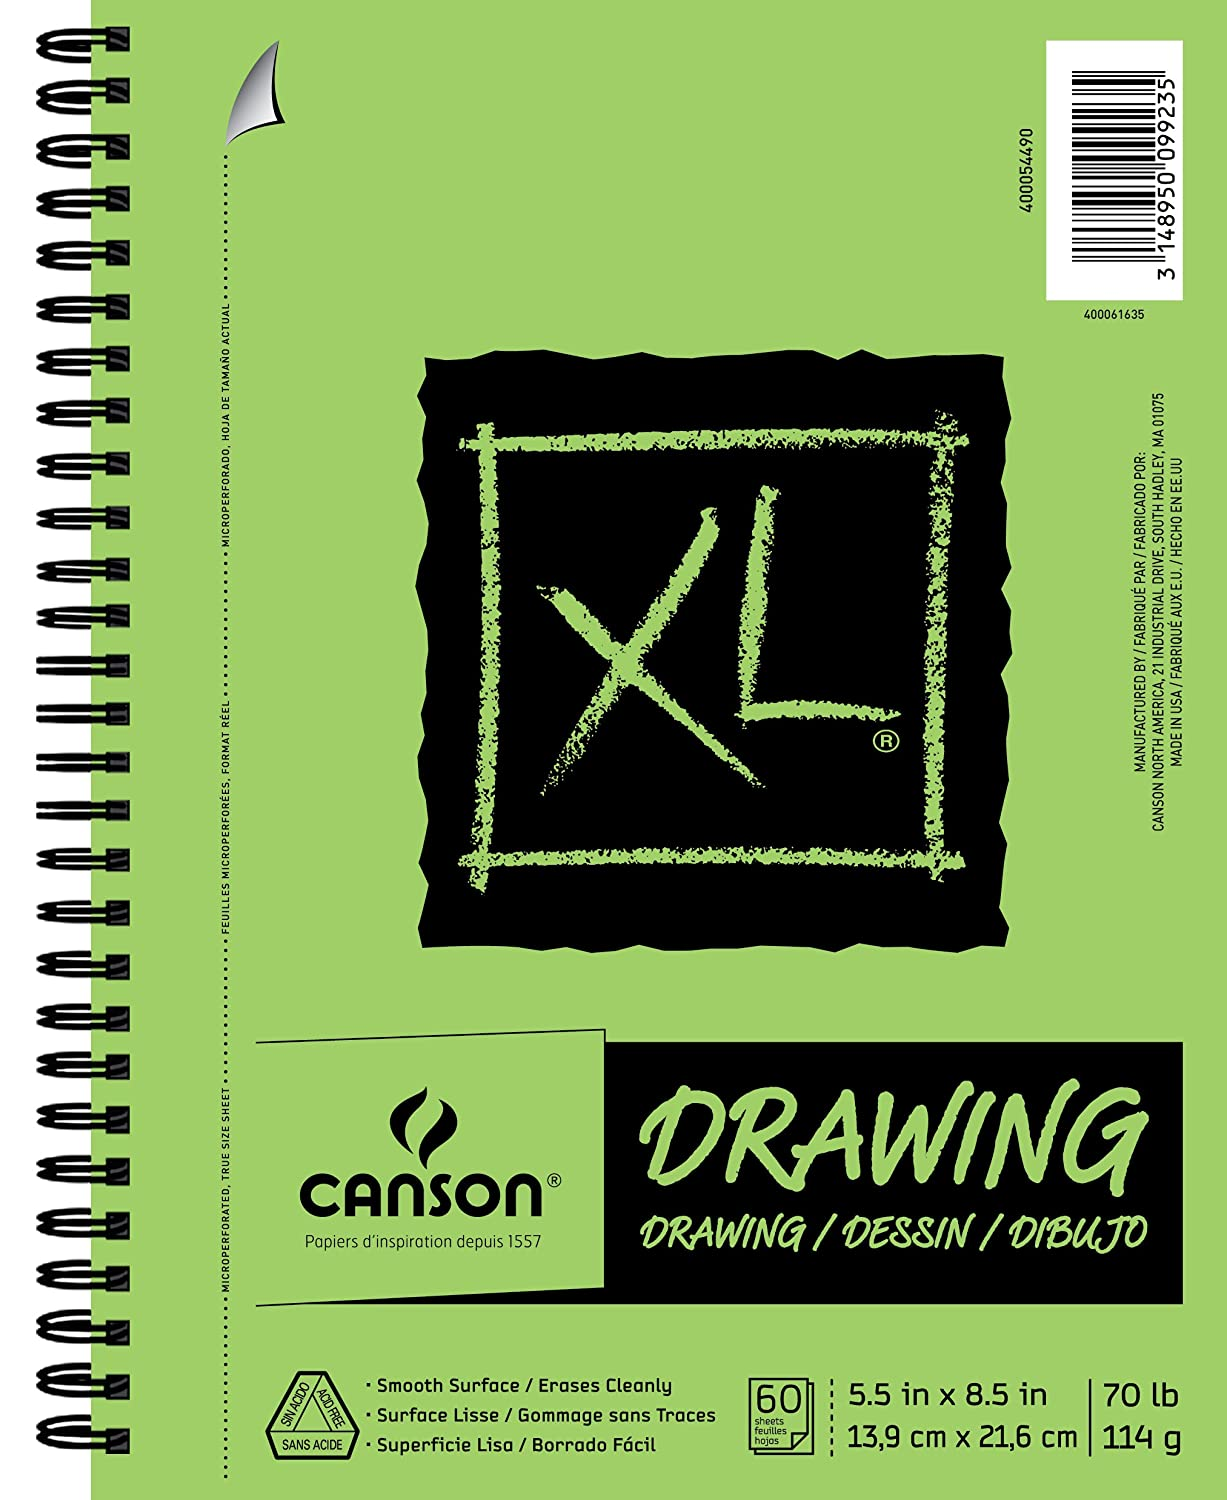 Canson XL Series Drawing Paper Pad, Micro Perforated, Smooth Surface, Side Wire Bound, 70 Pound, 5.5 x 8.5 Inch, 60 Sheets (400054490) Canson Inc